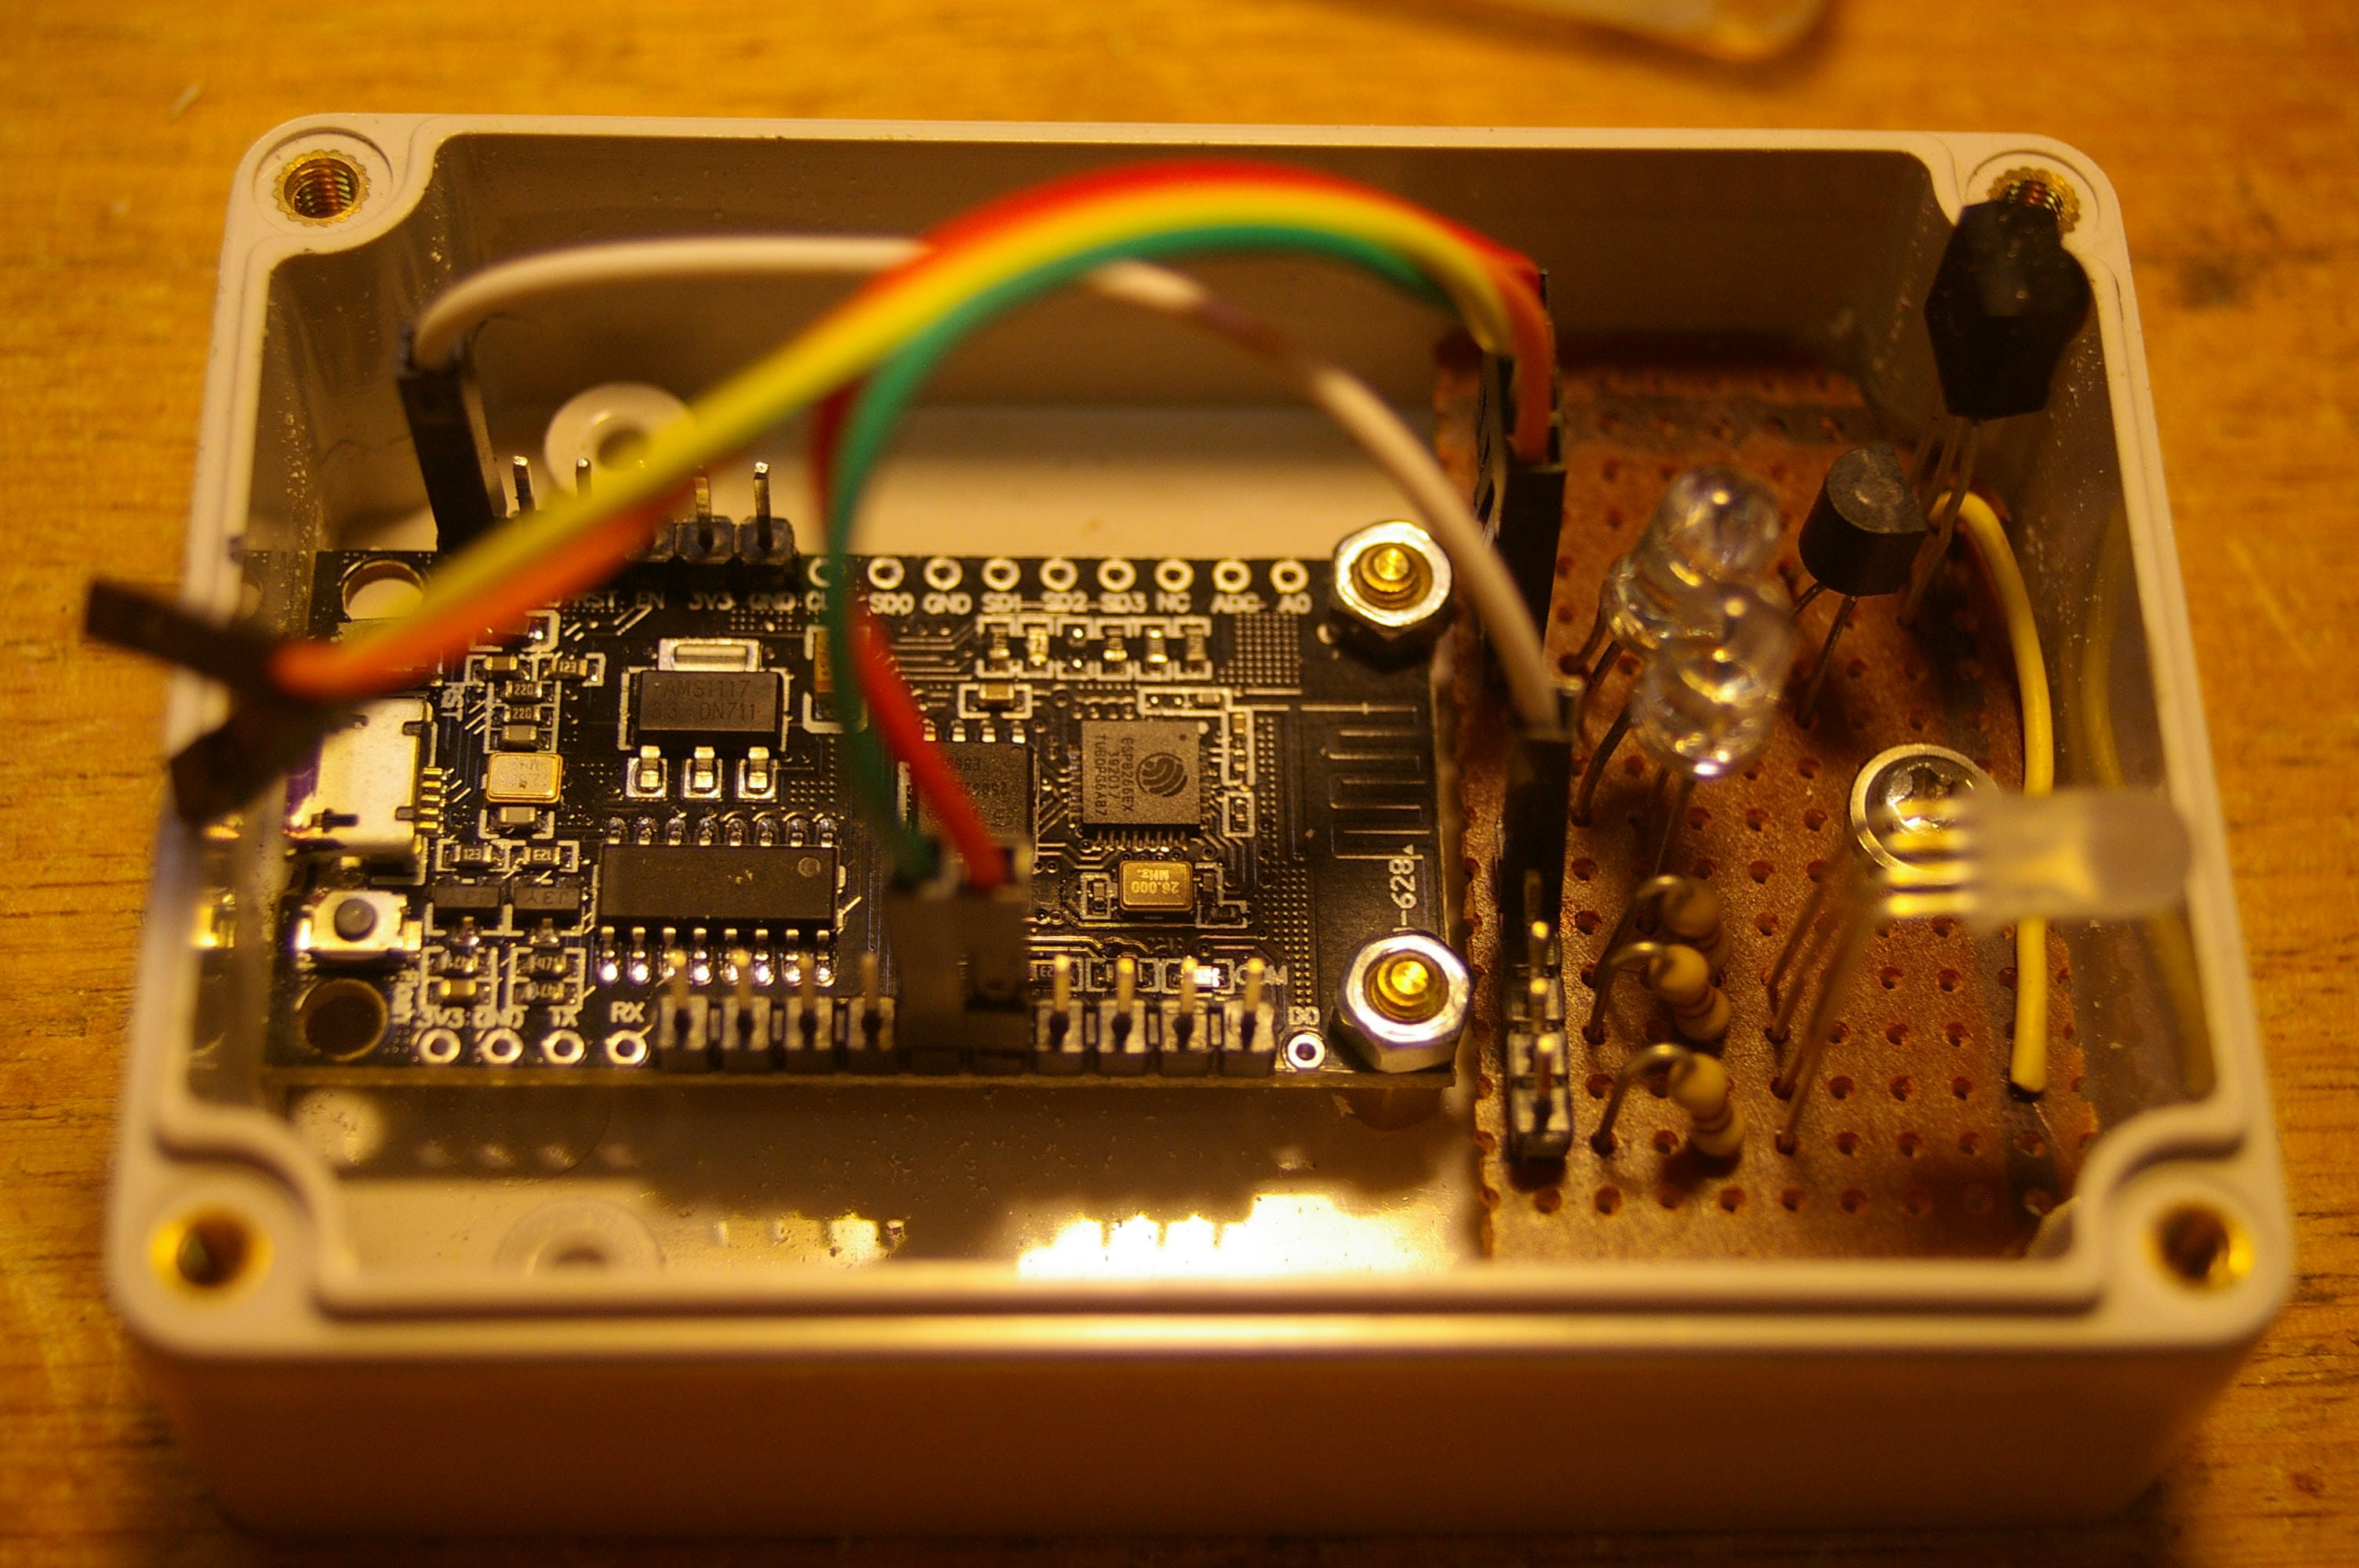 Other side showing ESP8266 and all the LED's and IR receiver.